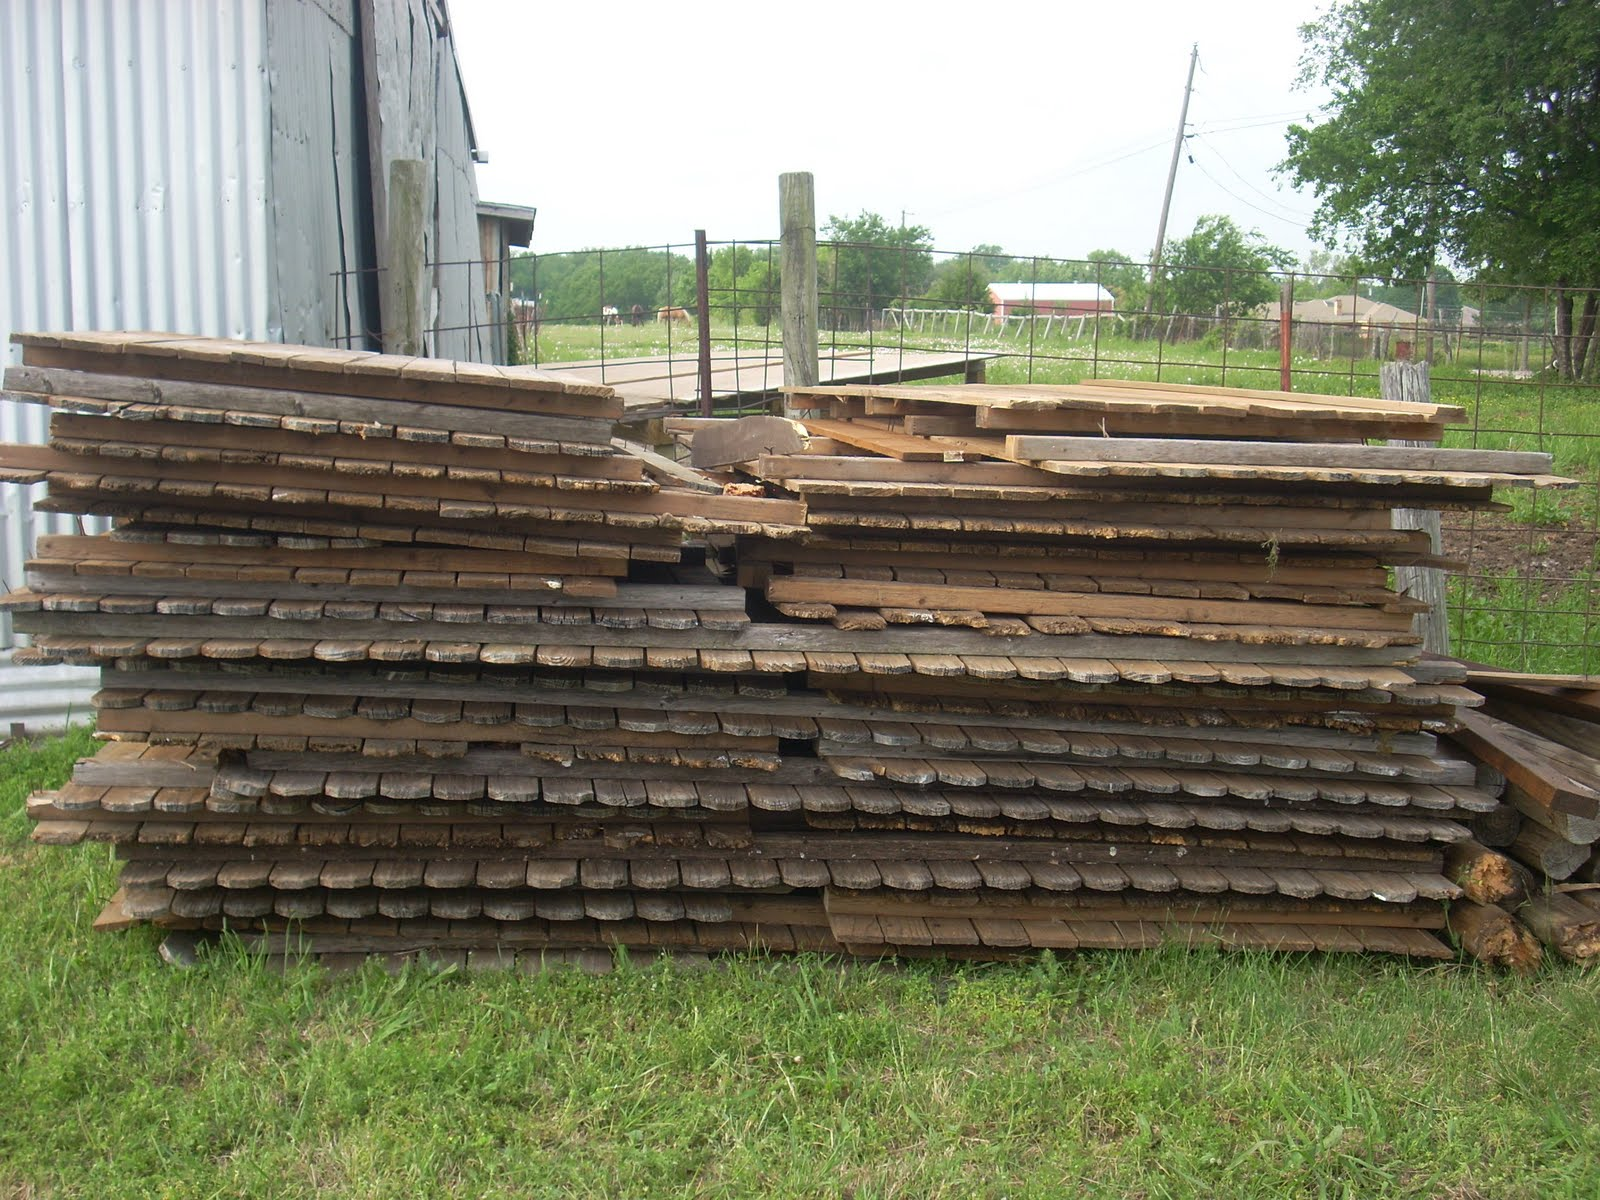 Superb img of  Wylie Texas: GONE Pine Fence Panels 145ft of 6' tall x 8' wide with #826749 color and 1600x1200 pixels